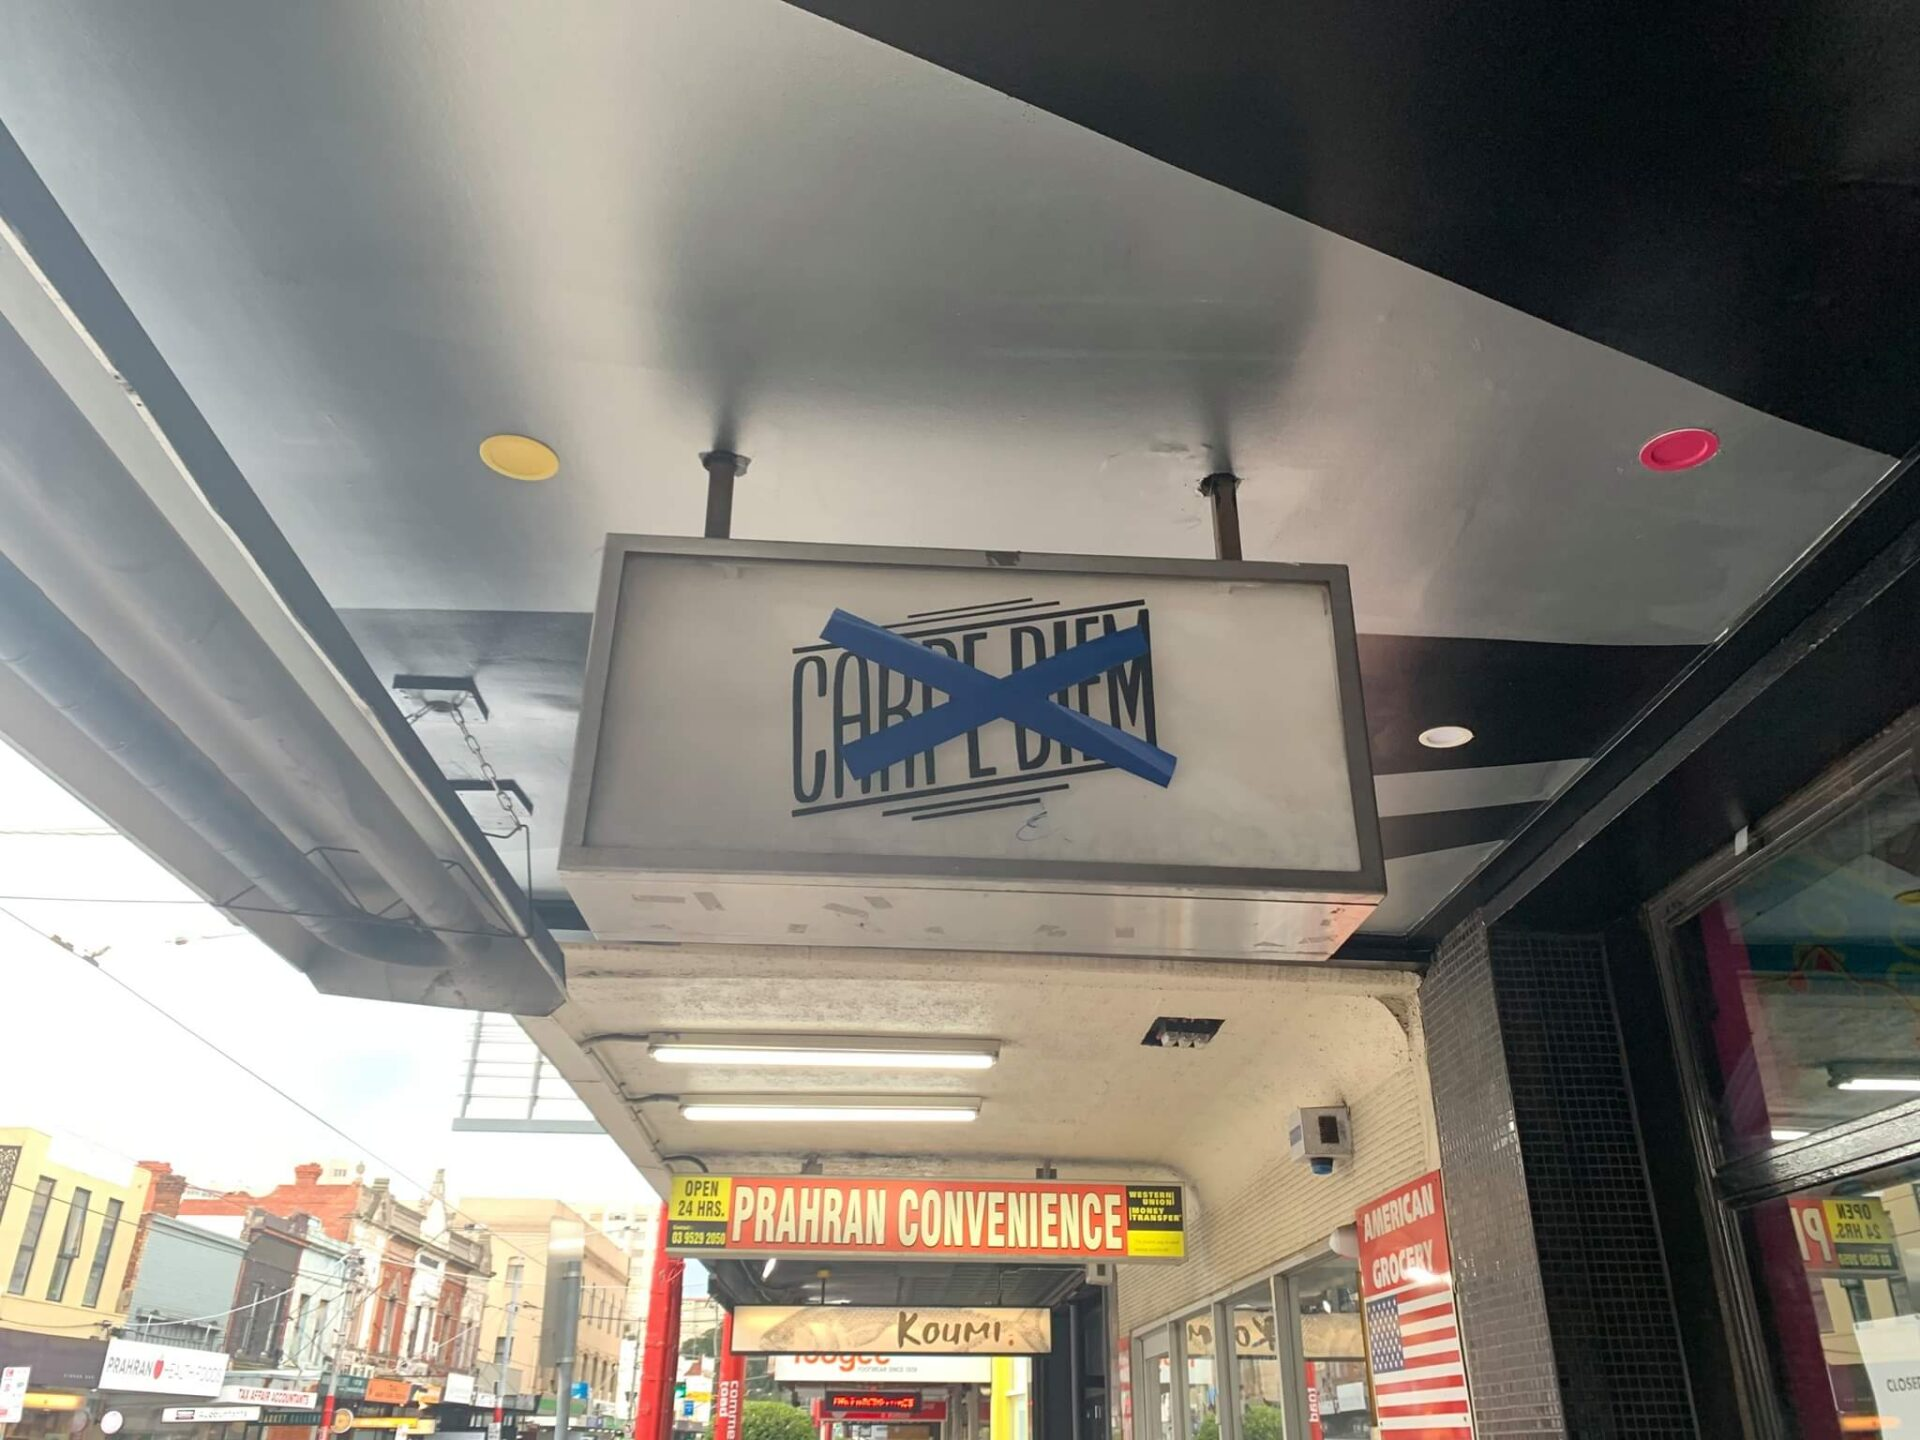 A light box sign bolted to a shop veranda with blue tape crossing out the name of the venue.